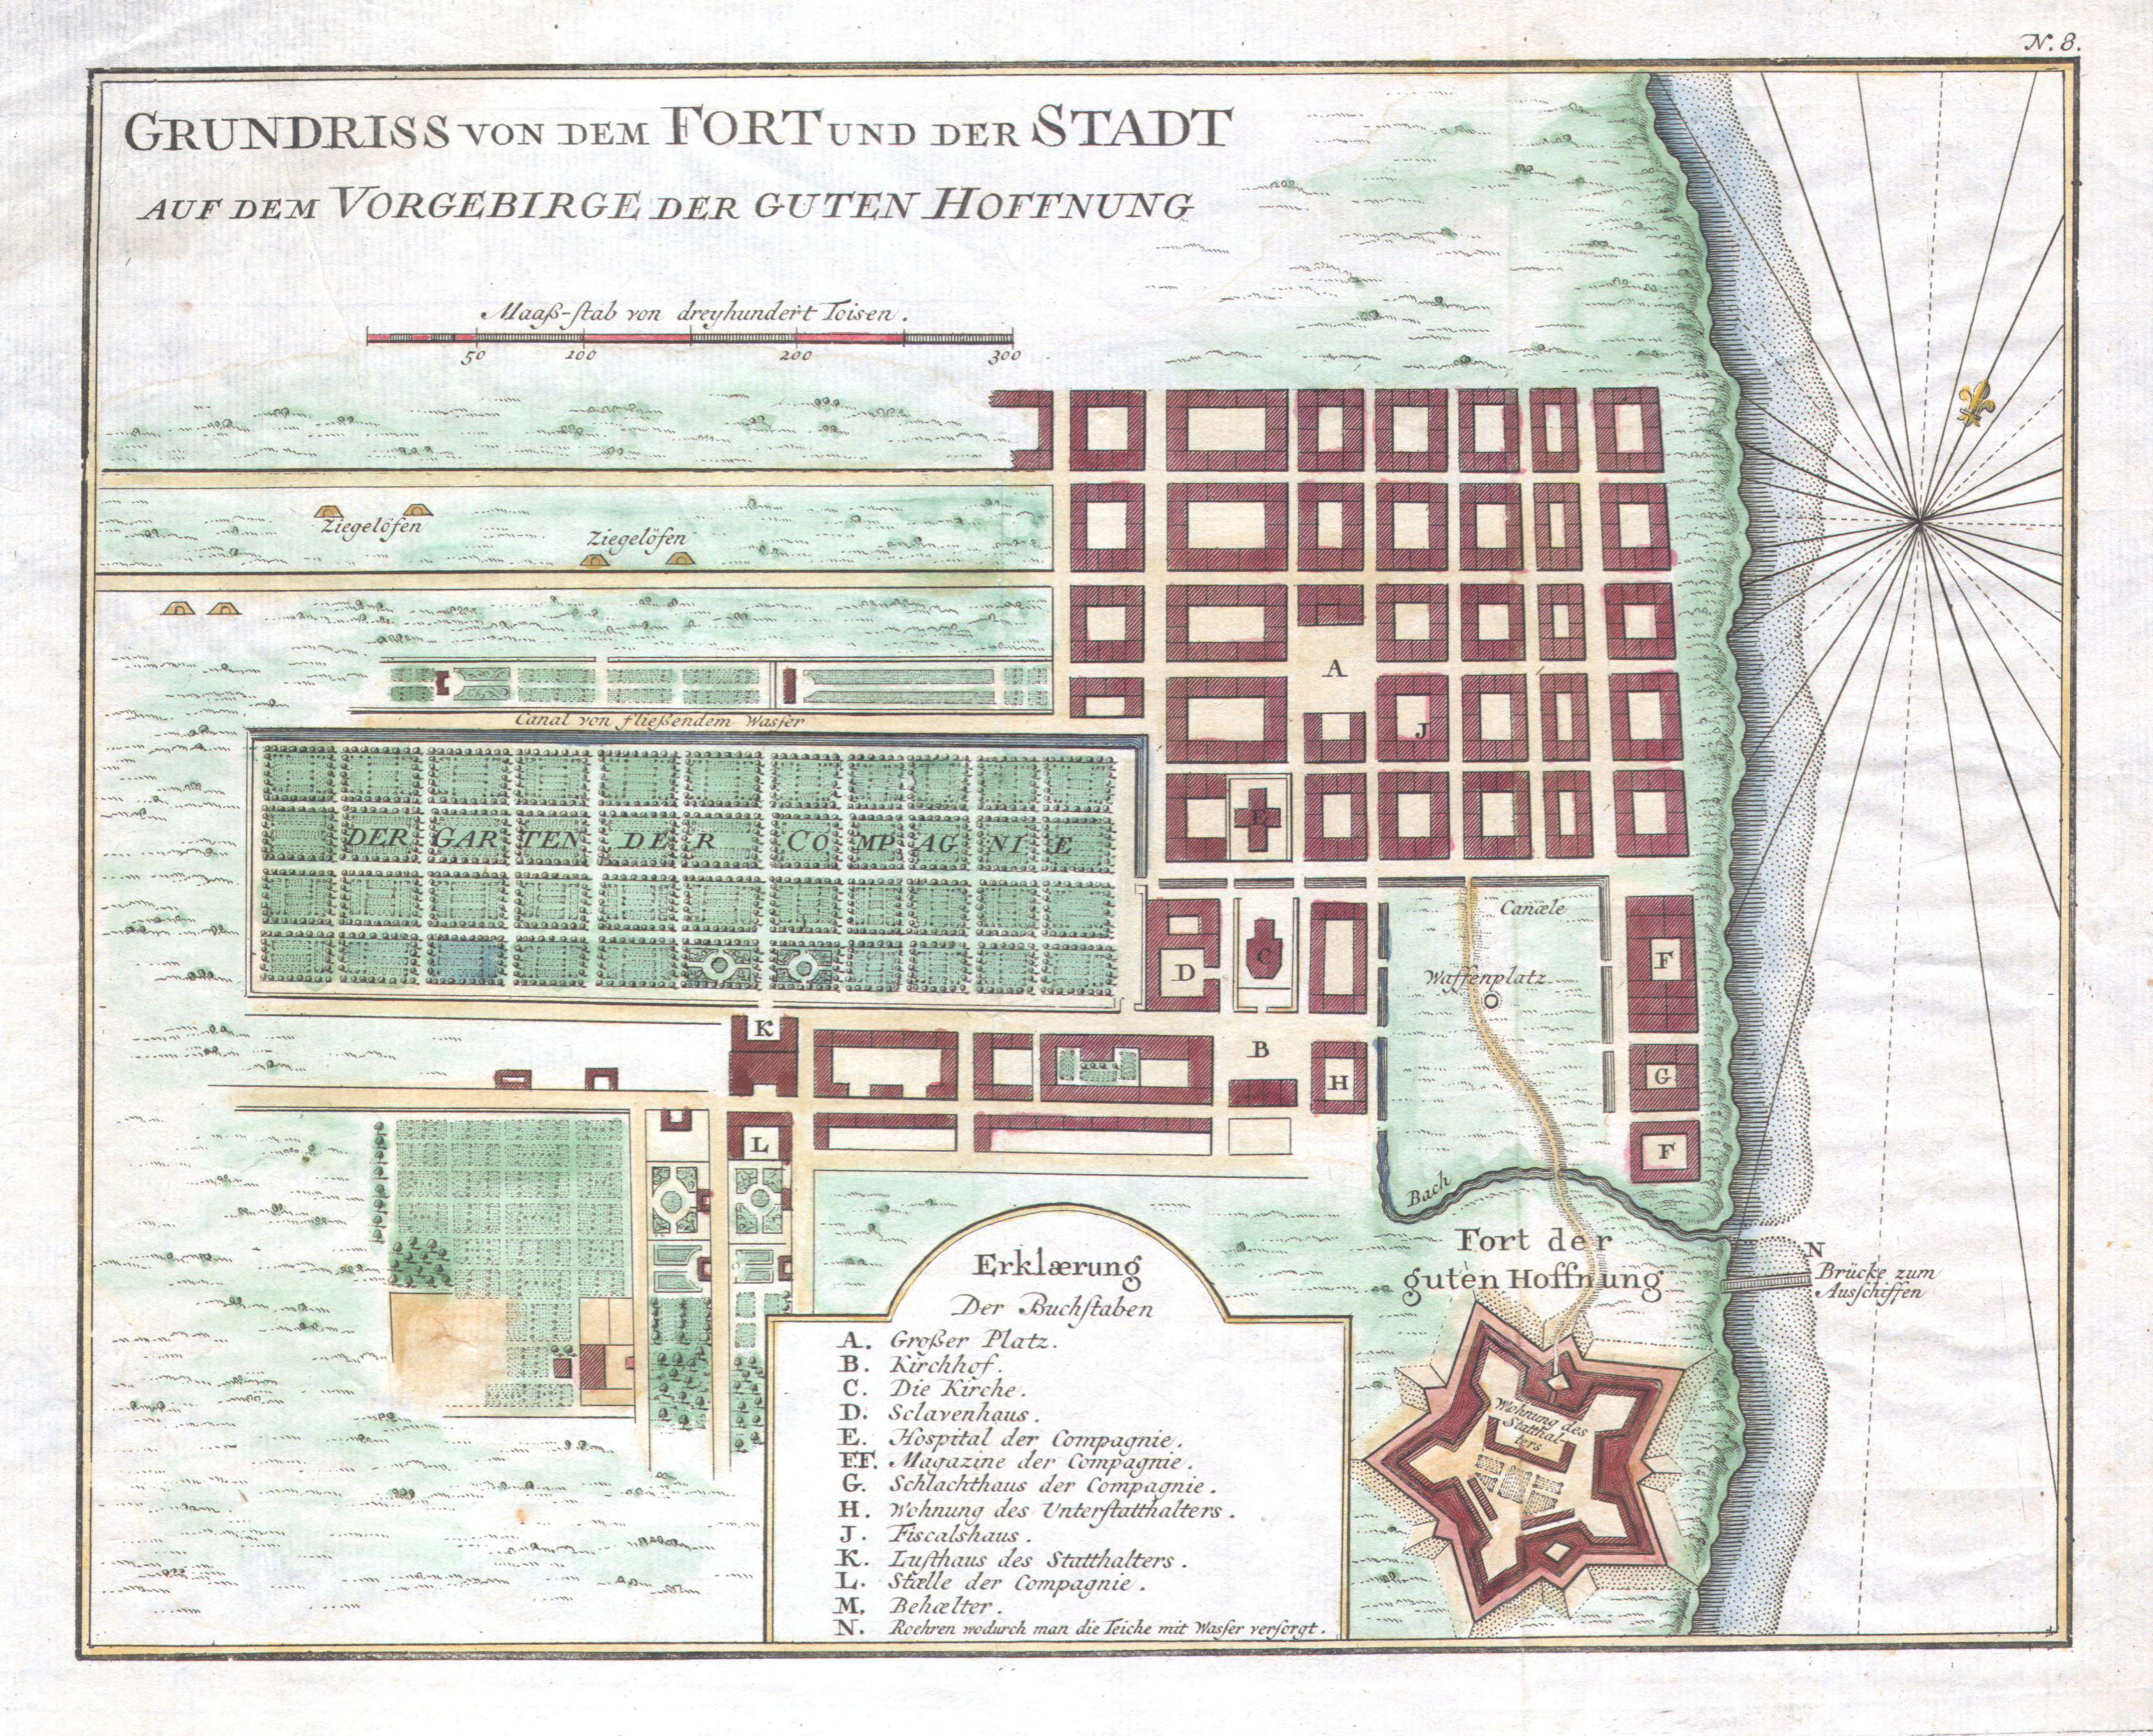 1750s in South Africa